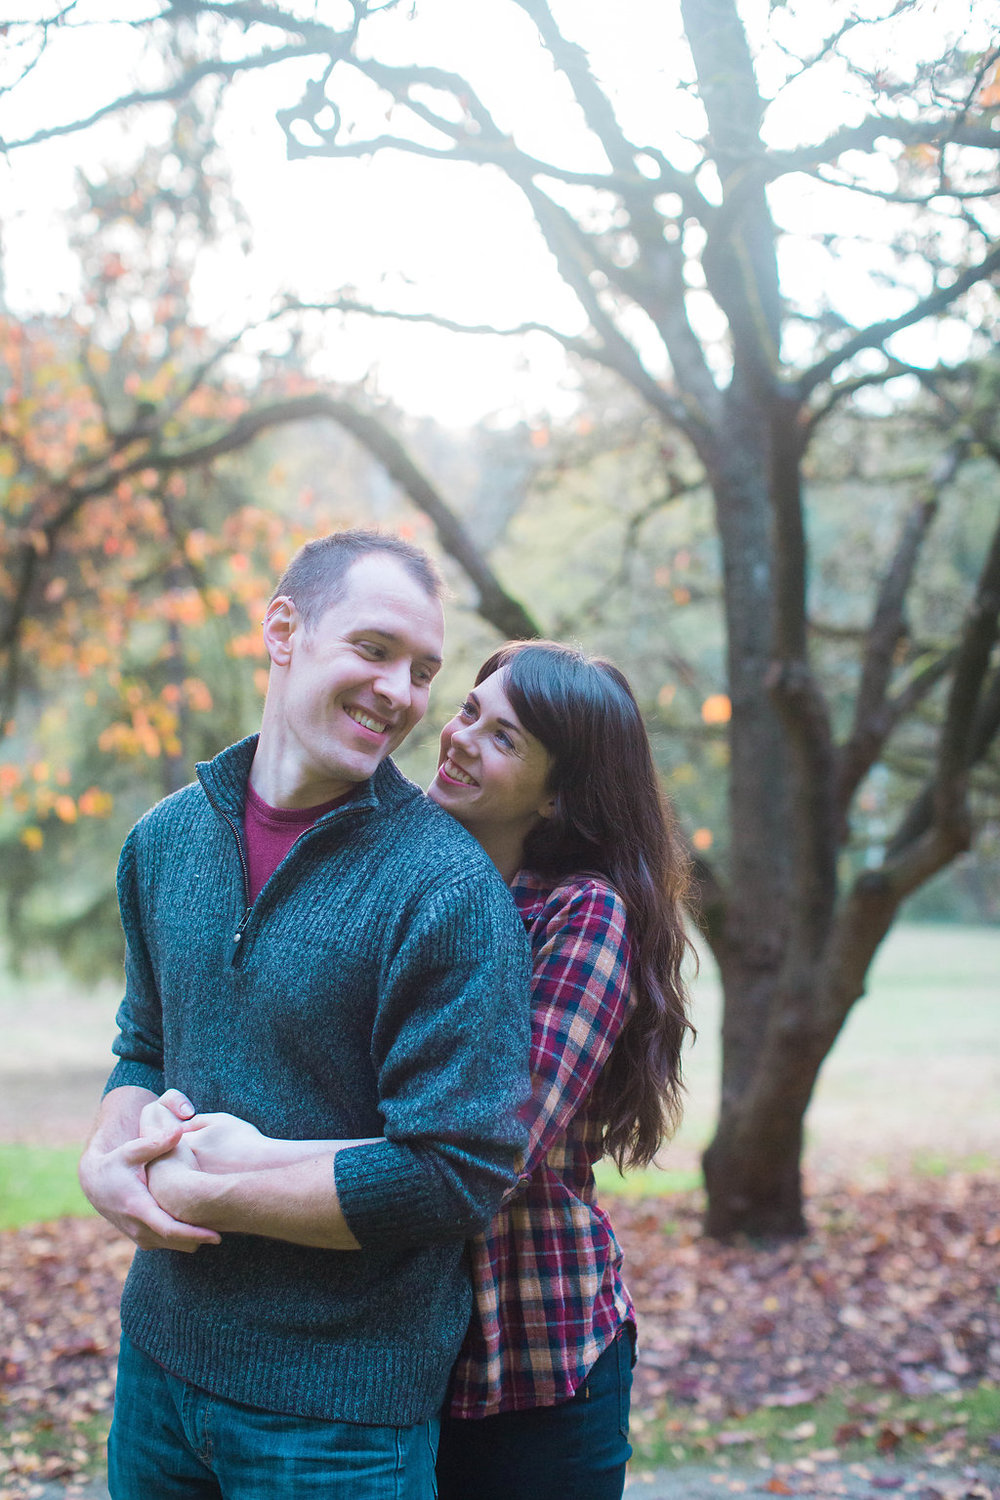 Tessa+Aaron_Engagement_Seattle_Arboretum_Adina+Preston+Weddings26.jpg